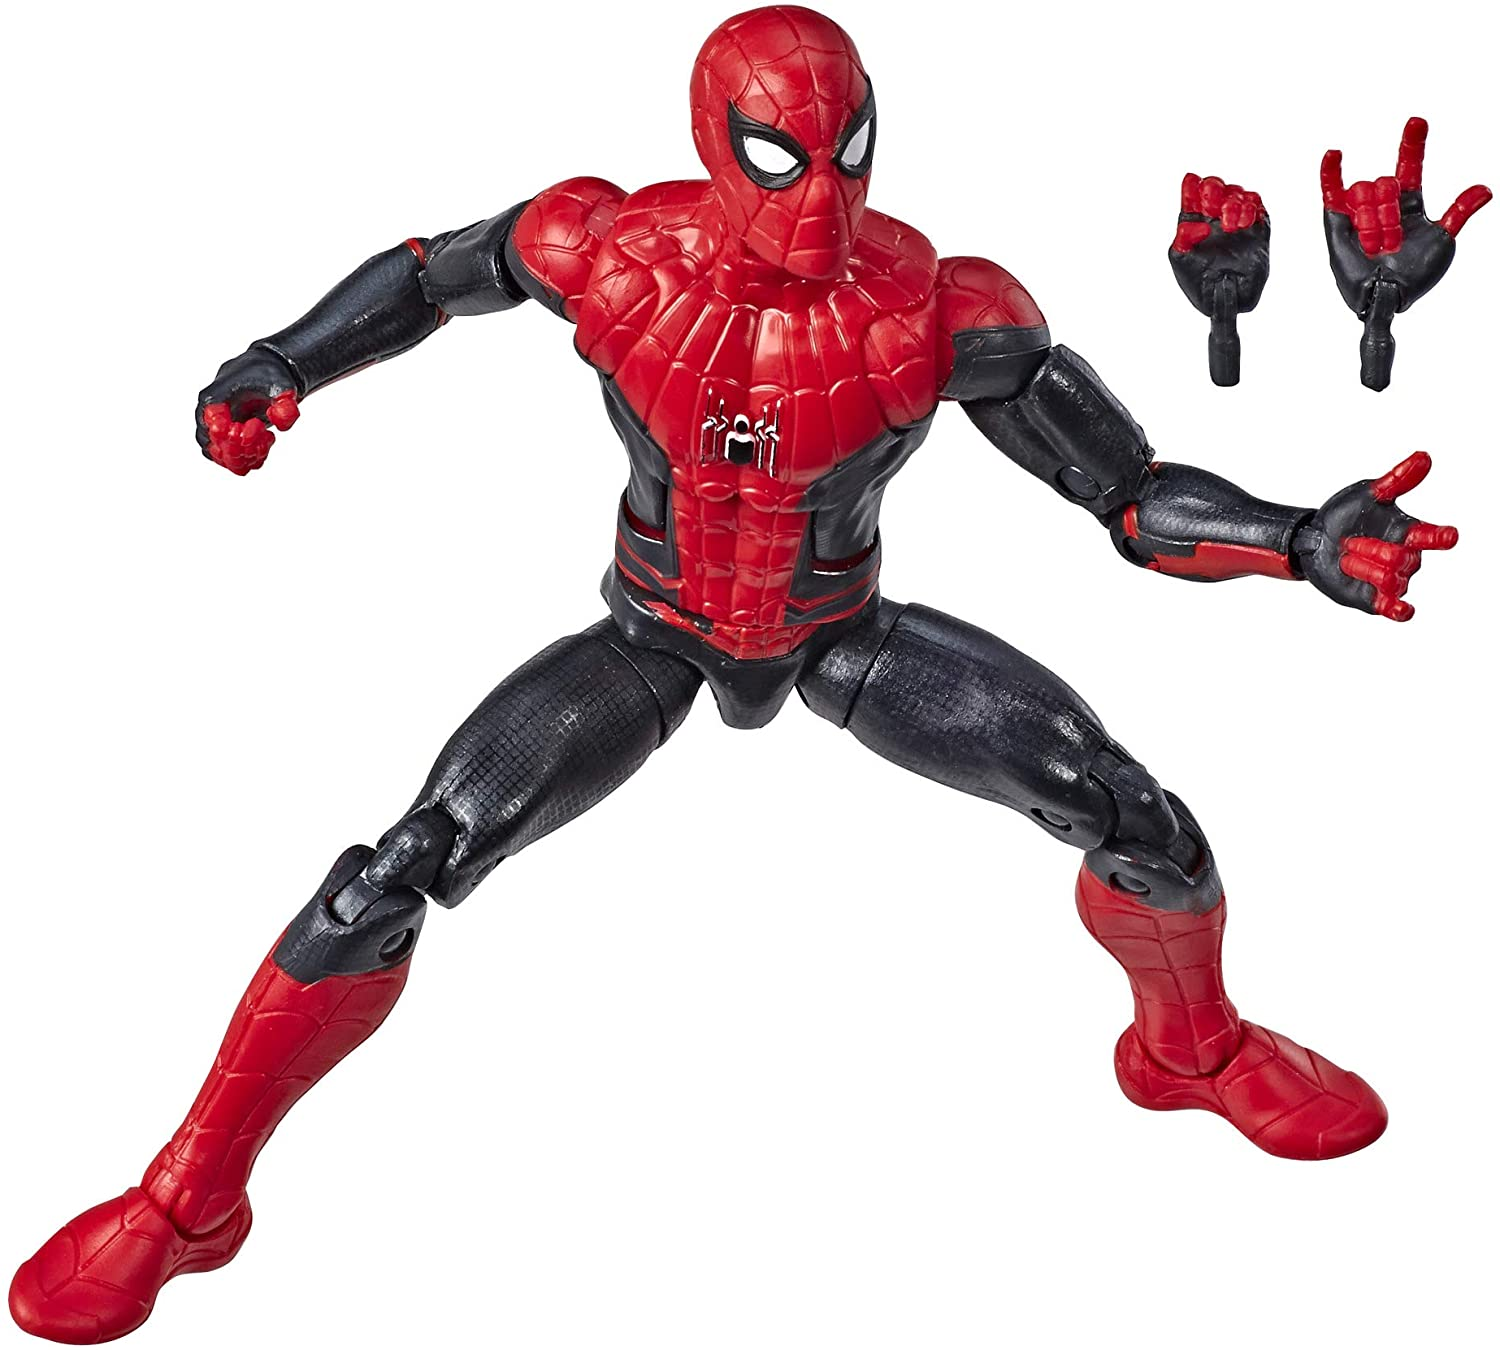 Hasbro - Marvel Legends - Molten Man BAF - Spider-Man Far From Home - Spider-Man (Hero Suit) Figure (E3956)